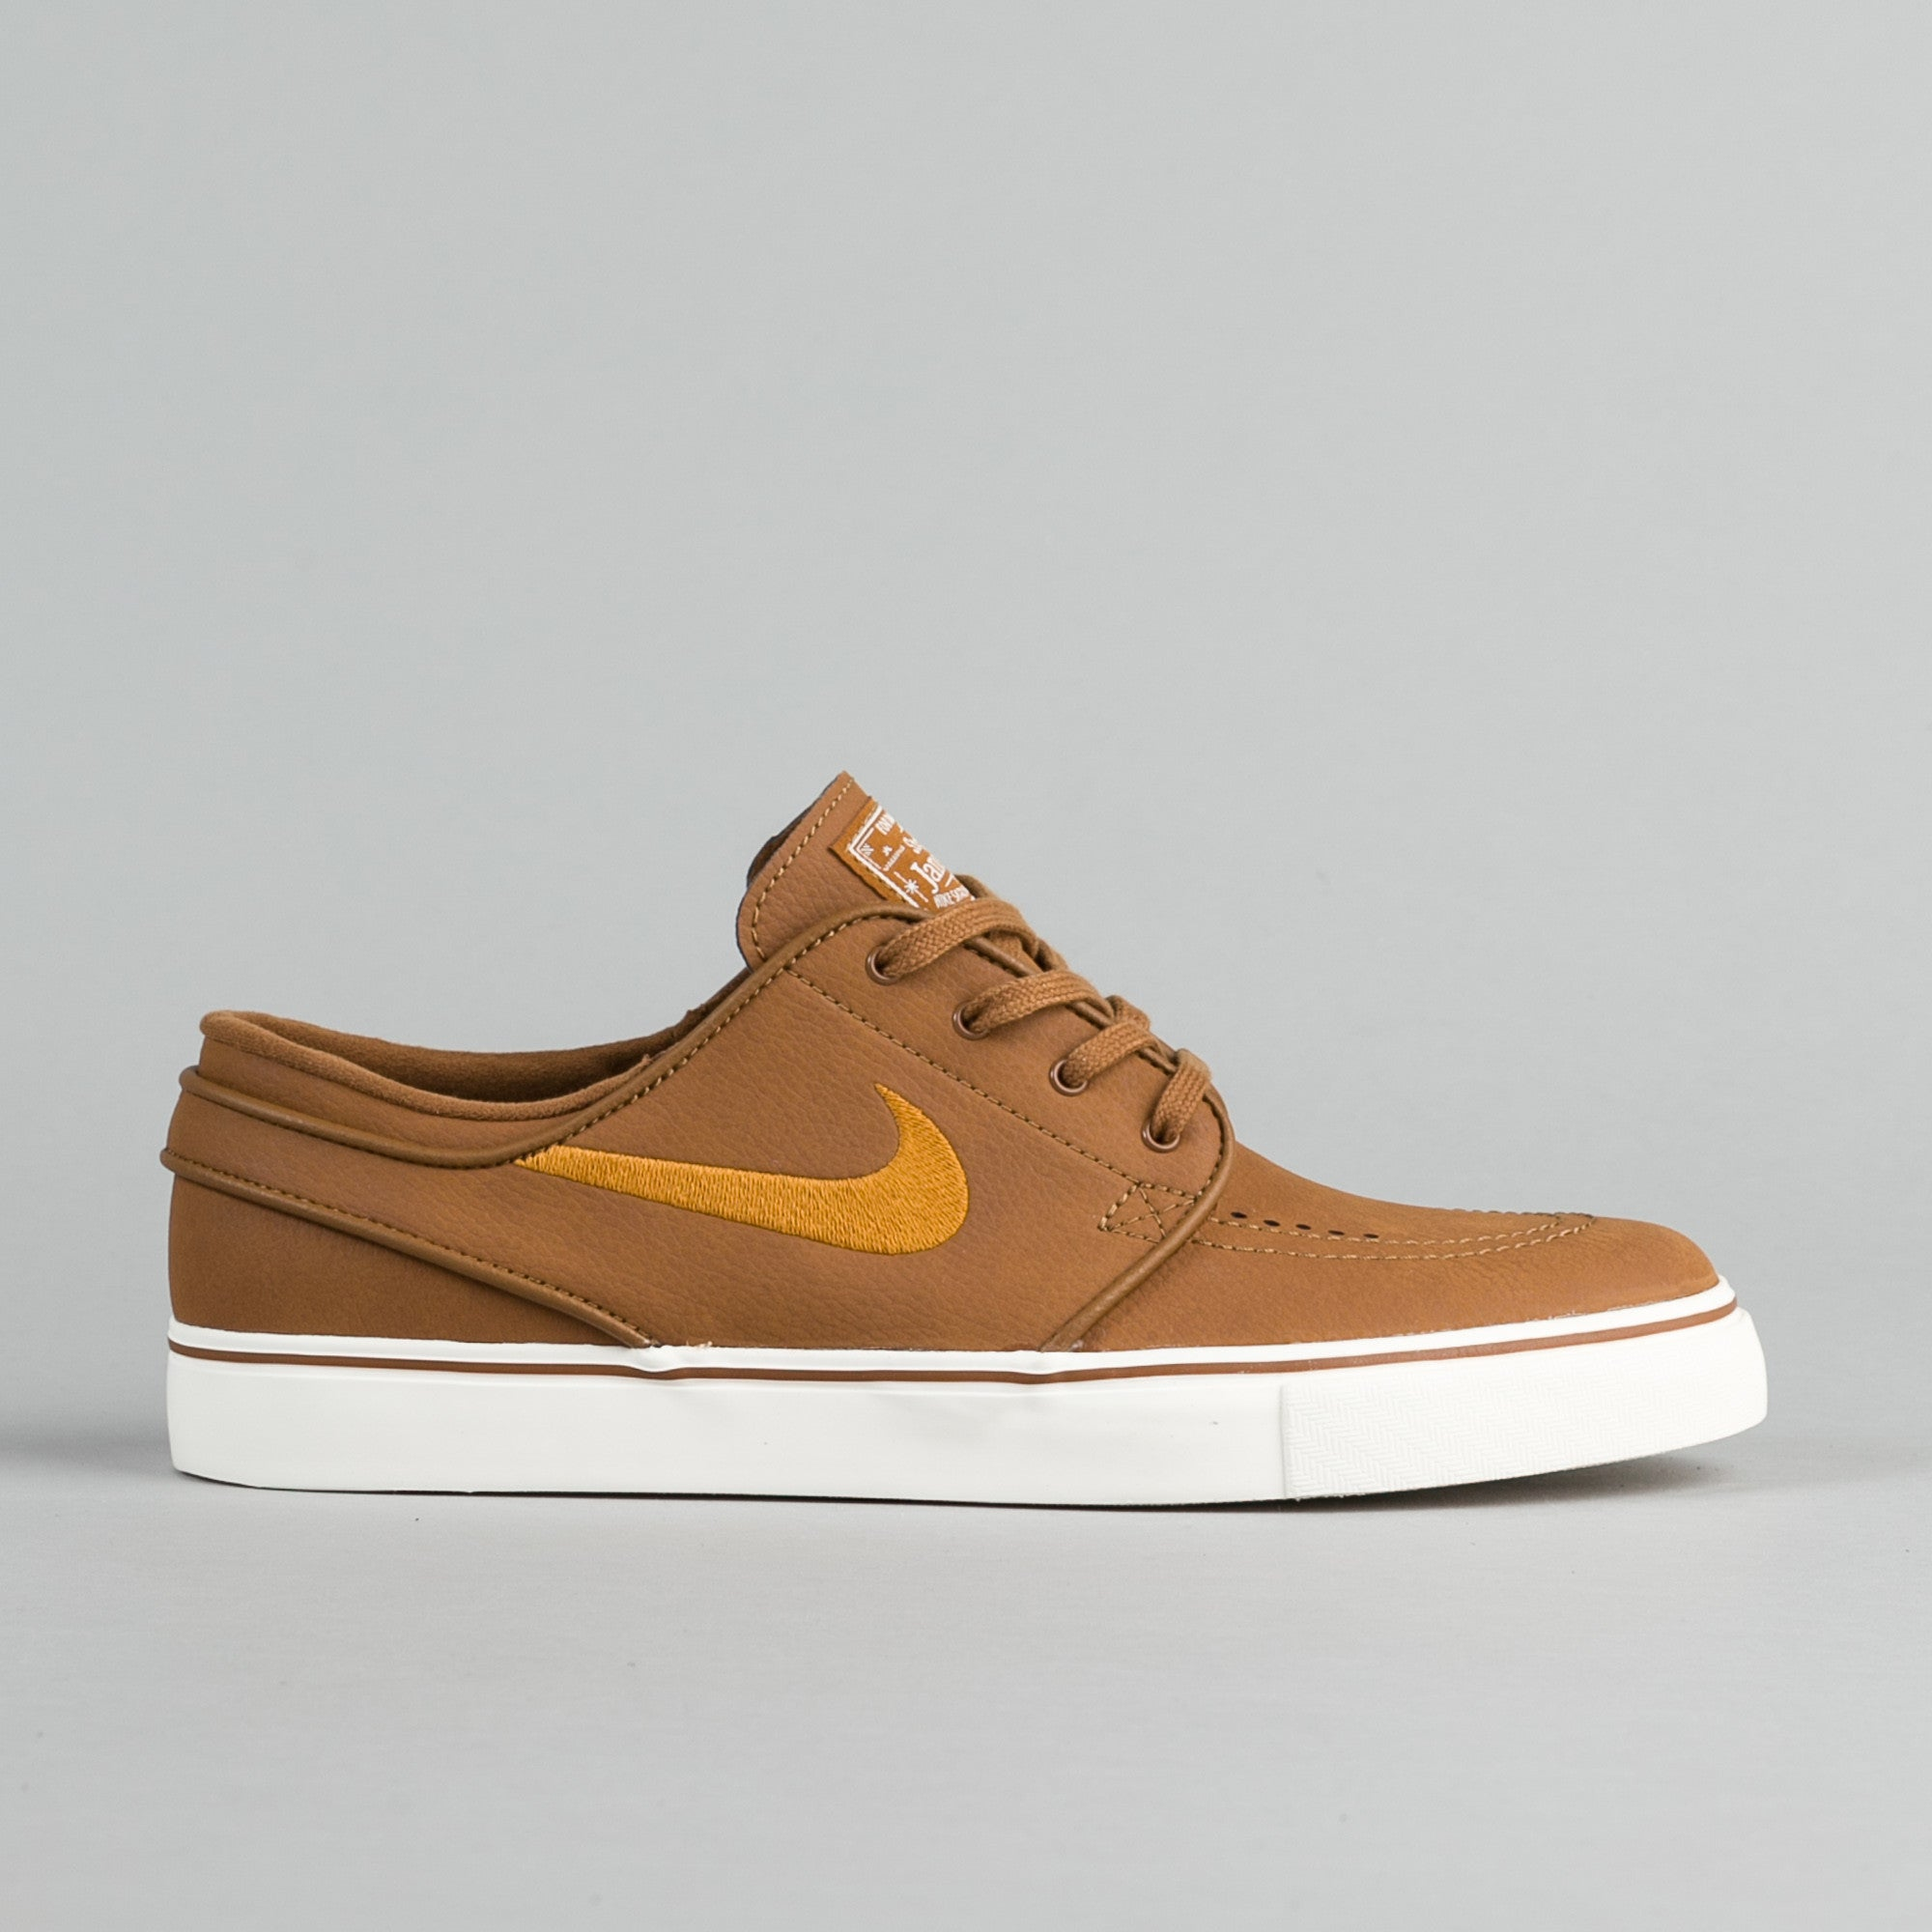 23896913c07d8 nike janoski leather orange Buy Nike Women s Free Running ...